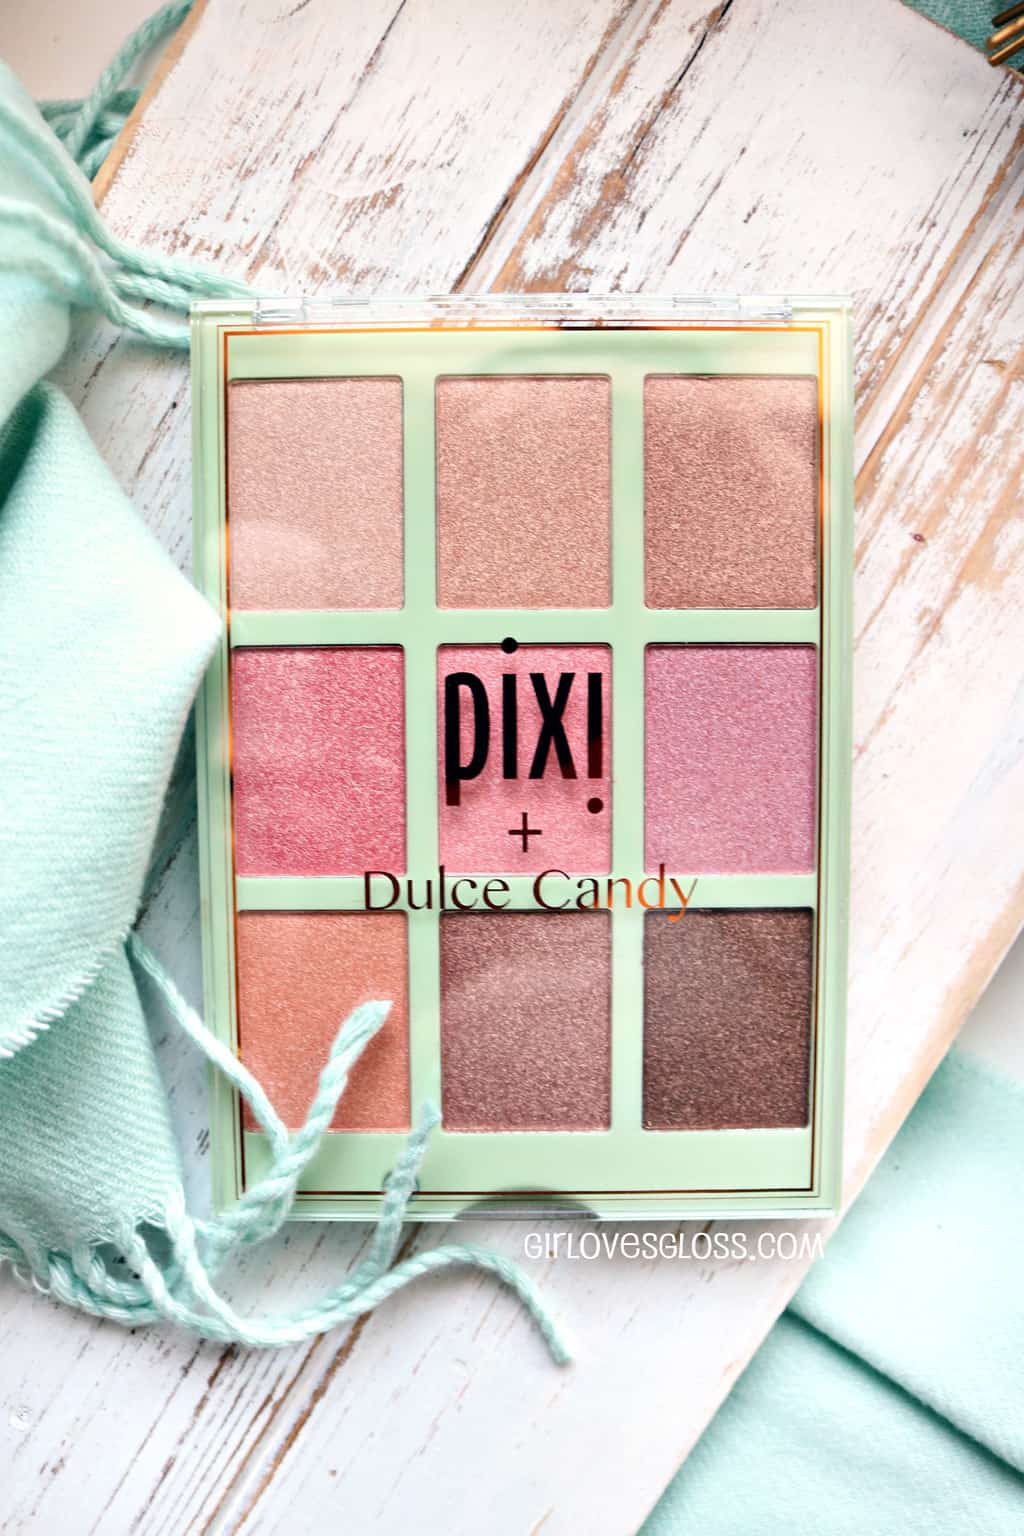 Pixi's Latest Palette Just Nailed It